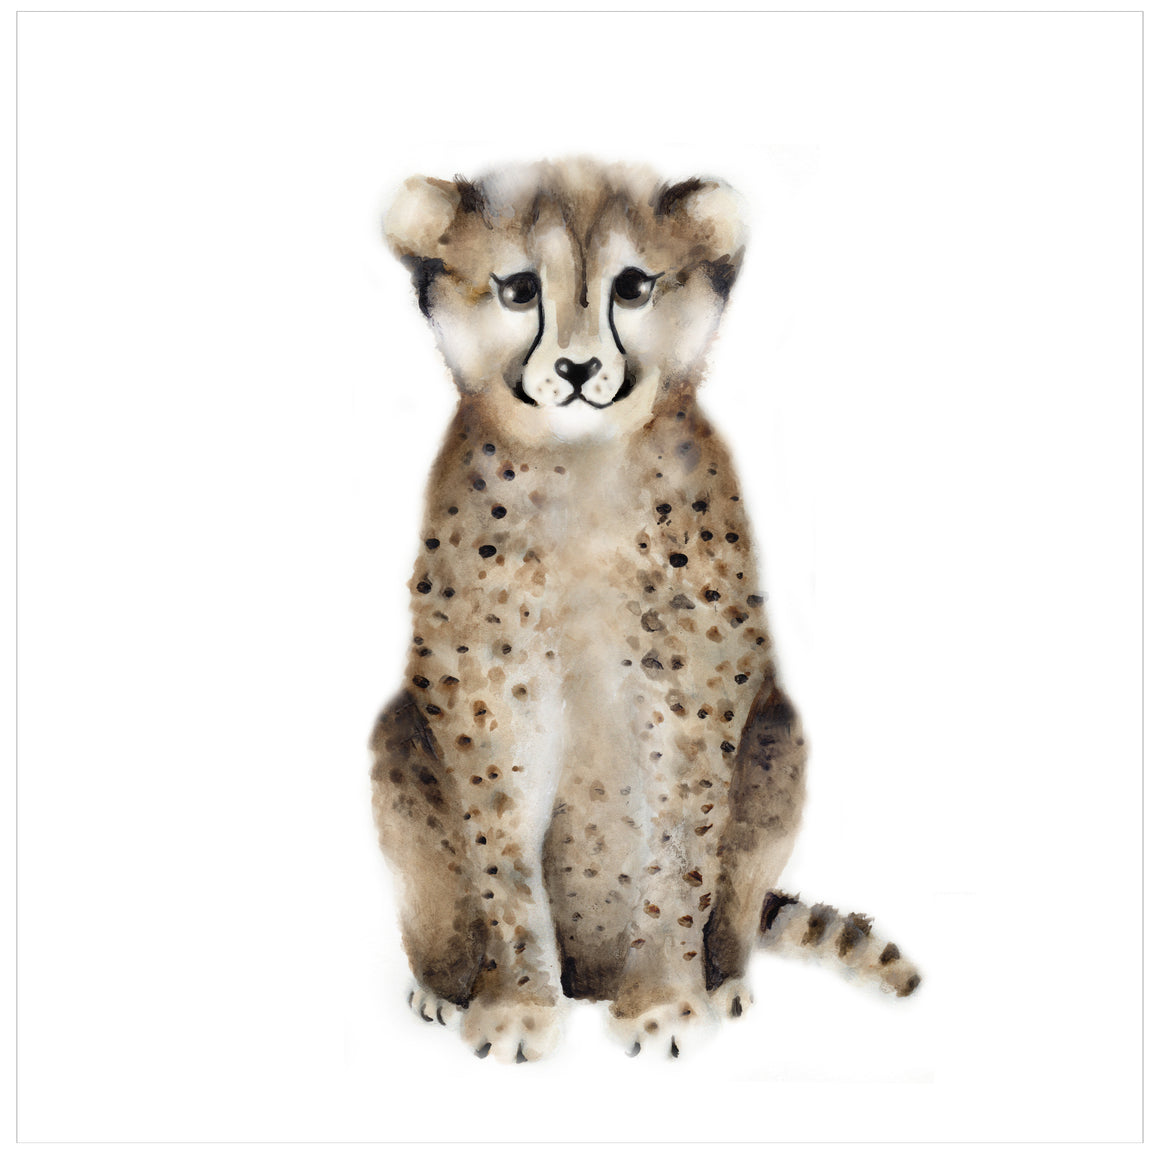 Cheetah Nursery Art Print - Studio Q - Art by Nicky Quartermaine Scott